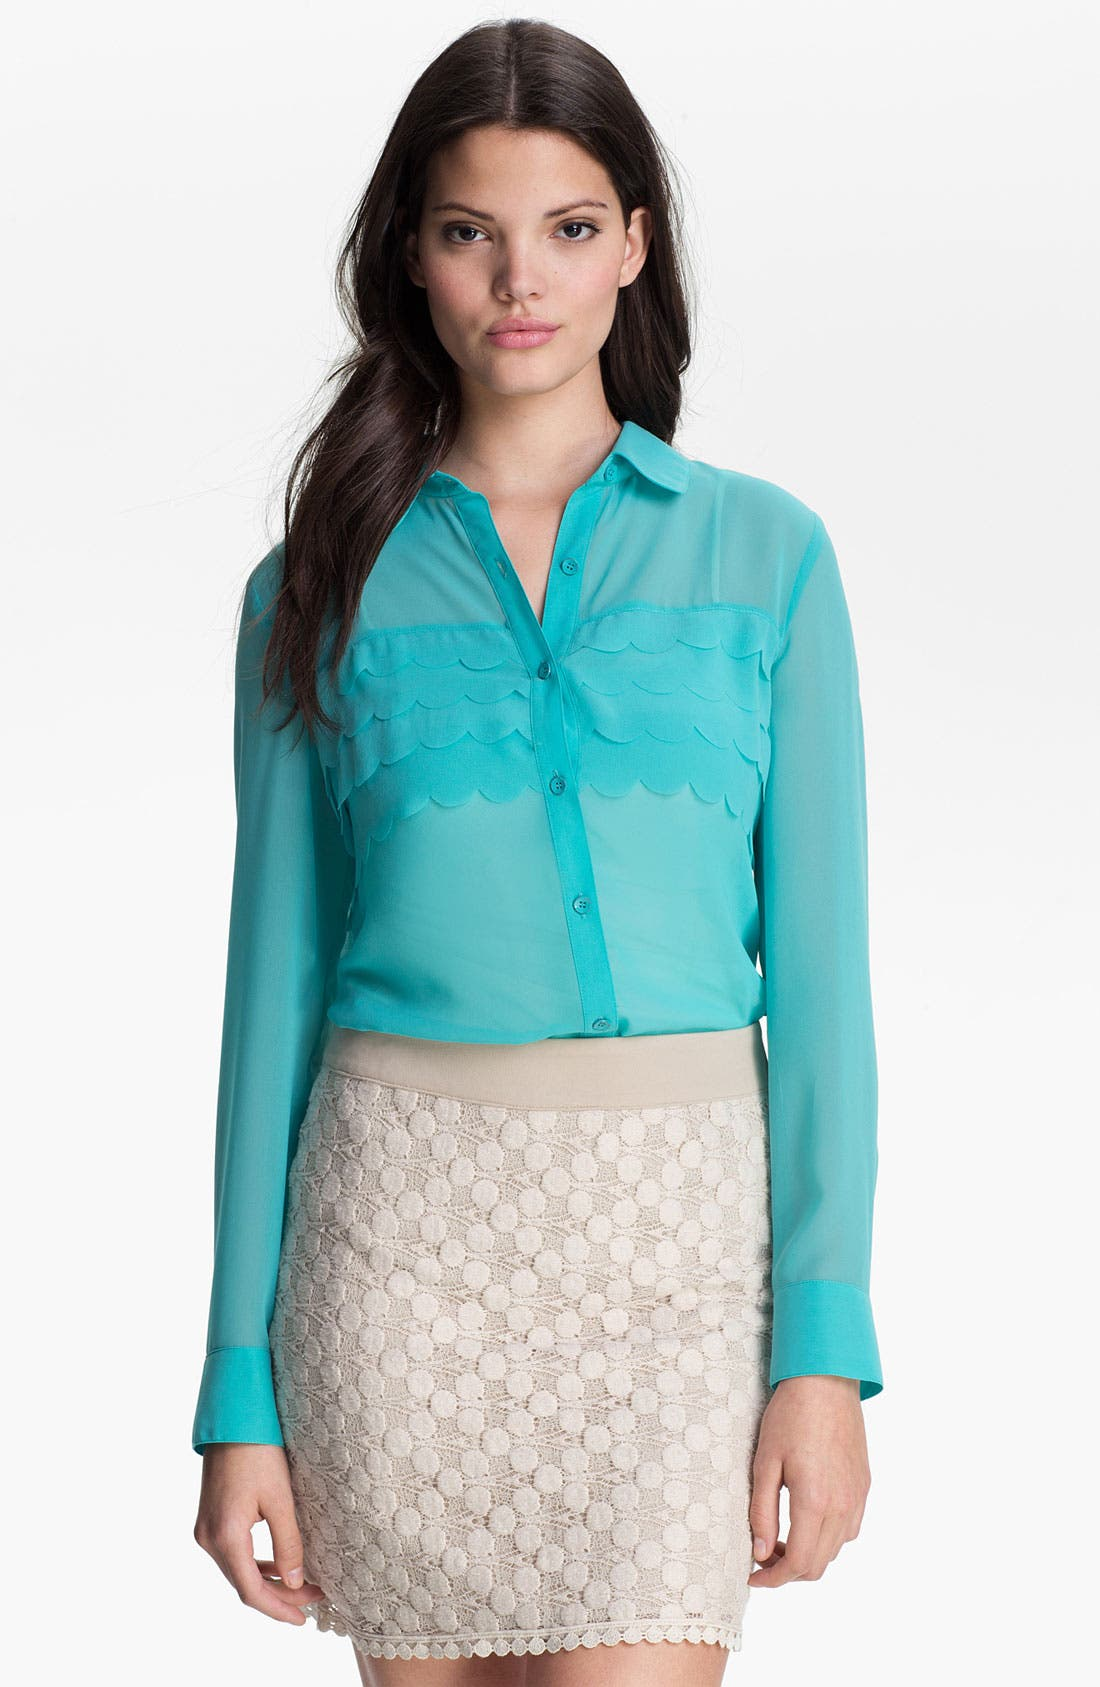 Main Image - Kensie Tiered Petals Chiffon Blouse